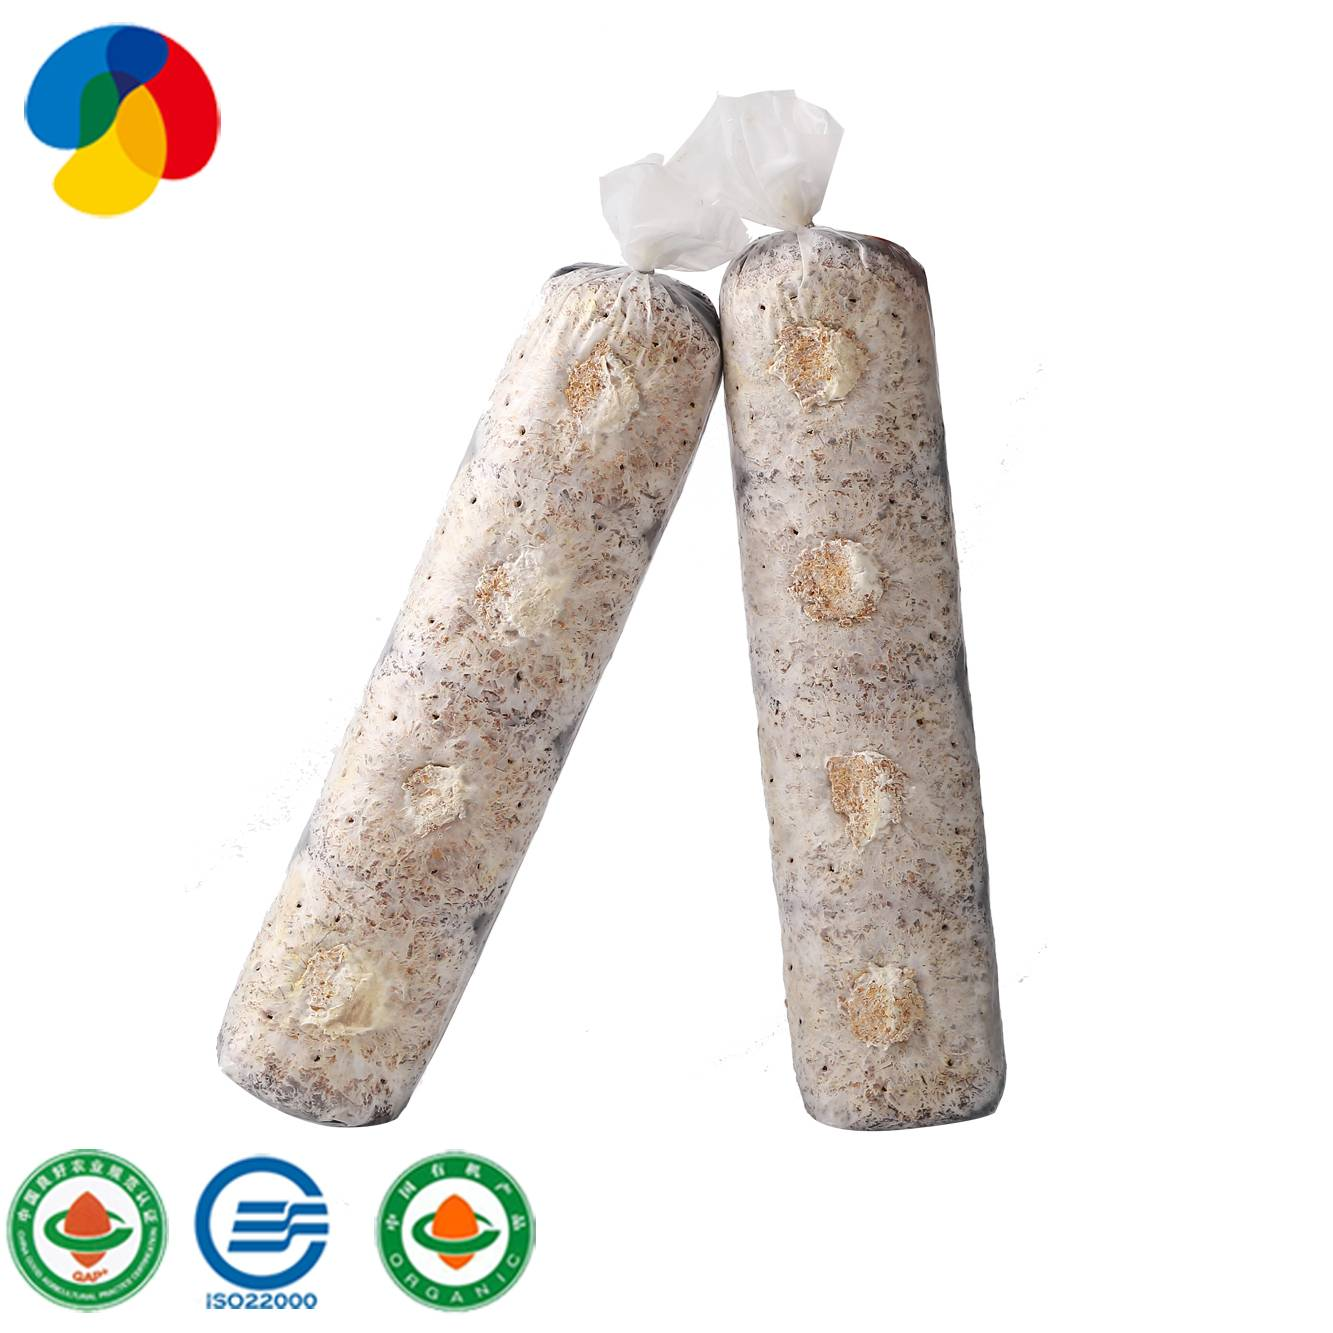 2020 Good Quality Shiitake Mushroom Substrate Spawn Sticks For Sale